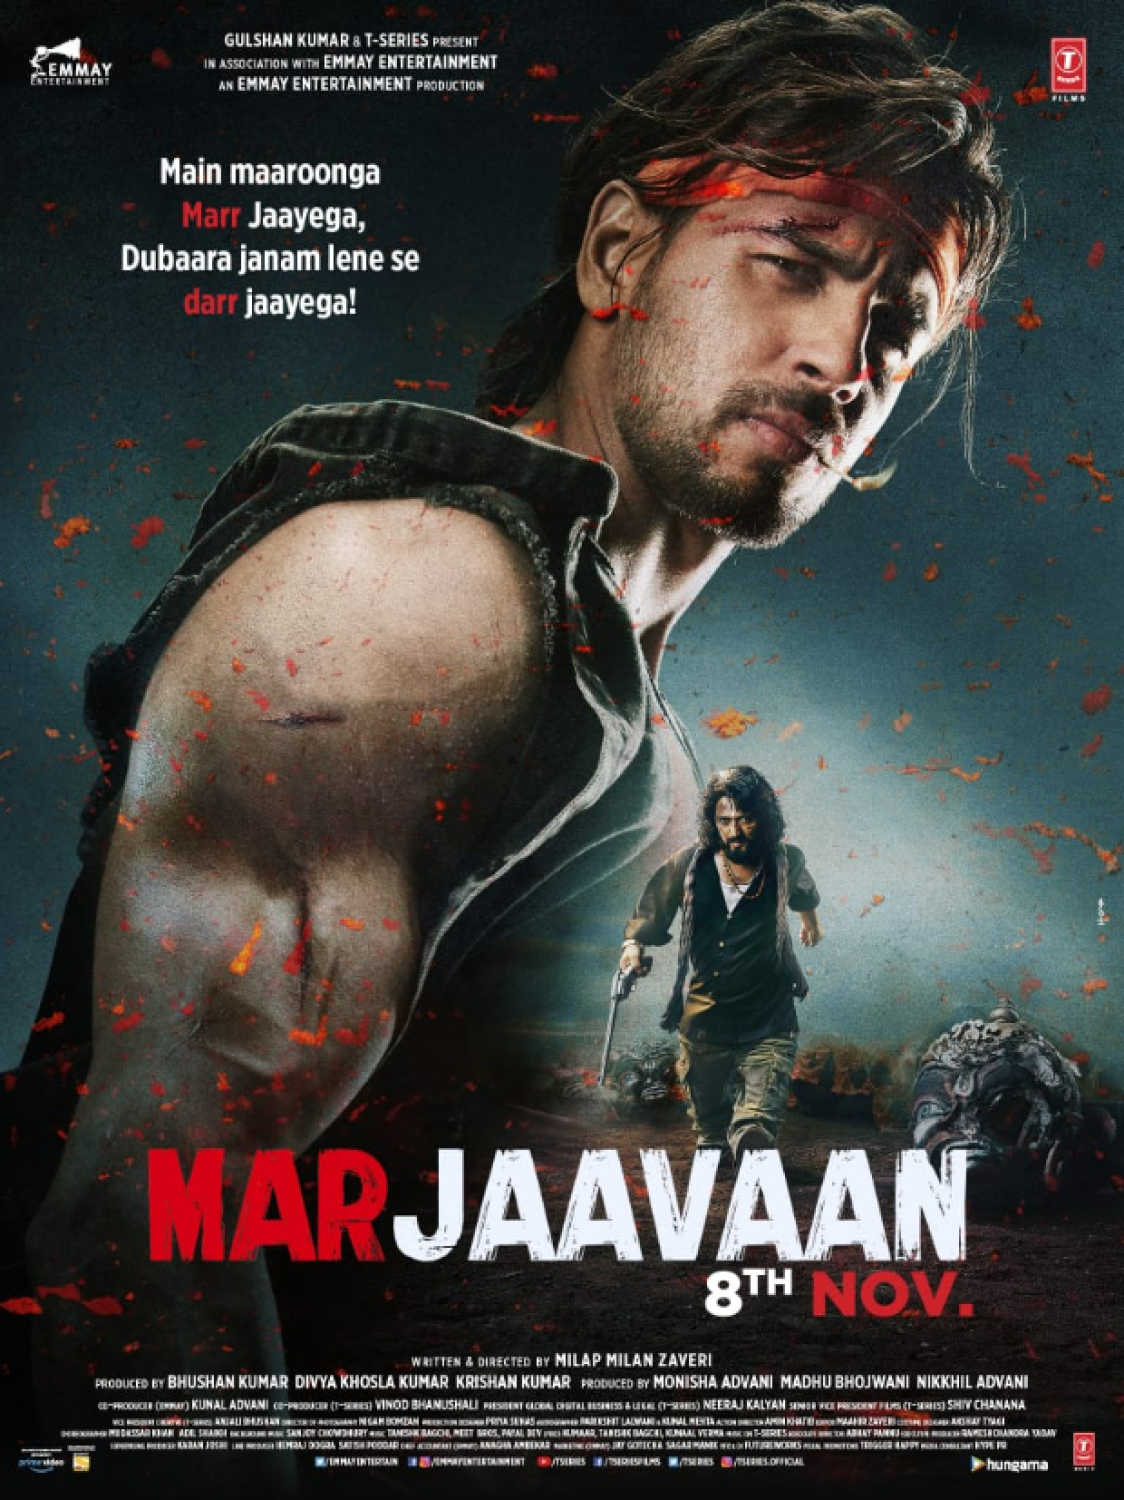 Download Marjaavaan 2019 Full Movie Download 720p 480p New Hindi Movies Hd Download For Free